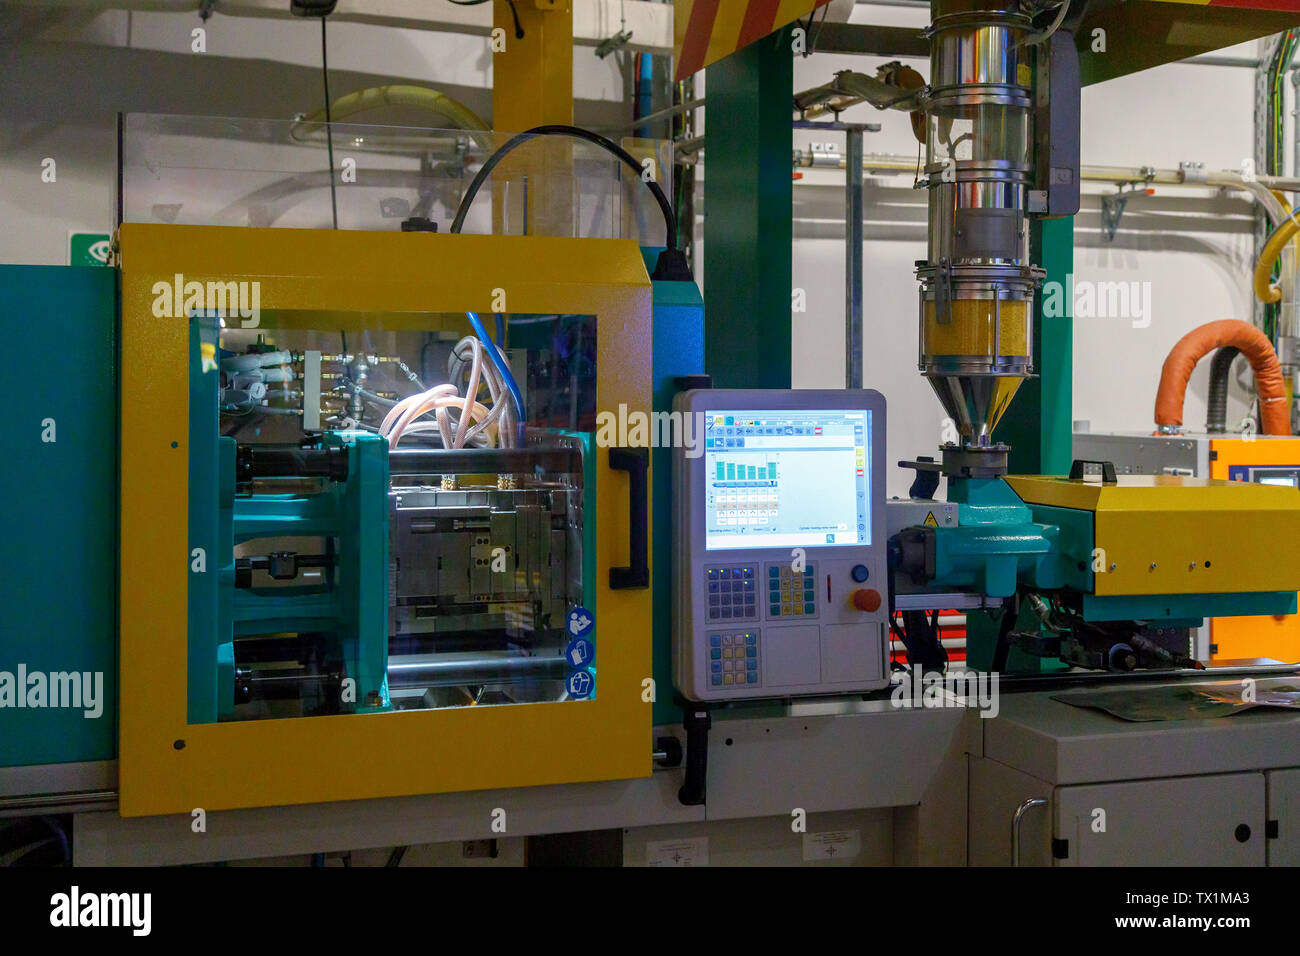 DUBAI, UAE, JANUARY 09, 2019: Plastic injection molding machine in the process of creating a brick Lego in Legoland - Stock Image